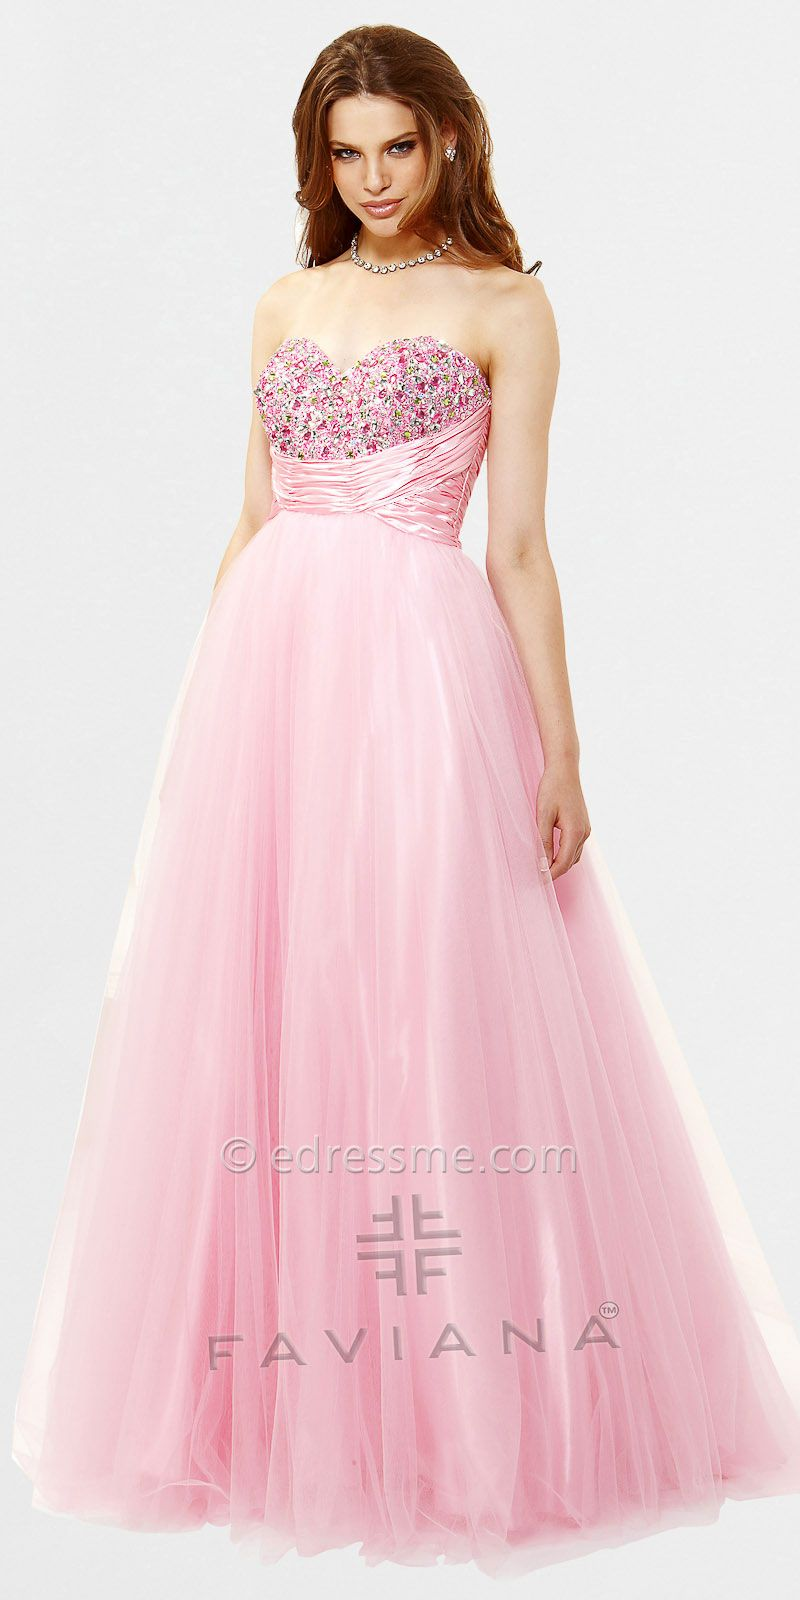 1950s Prom Dresses, Formal Dresses, Evening Gowns